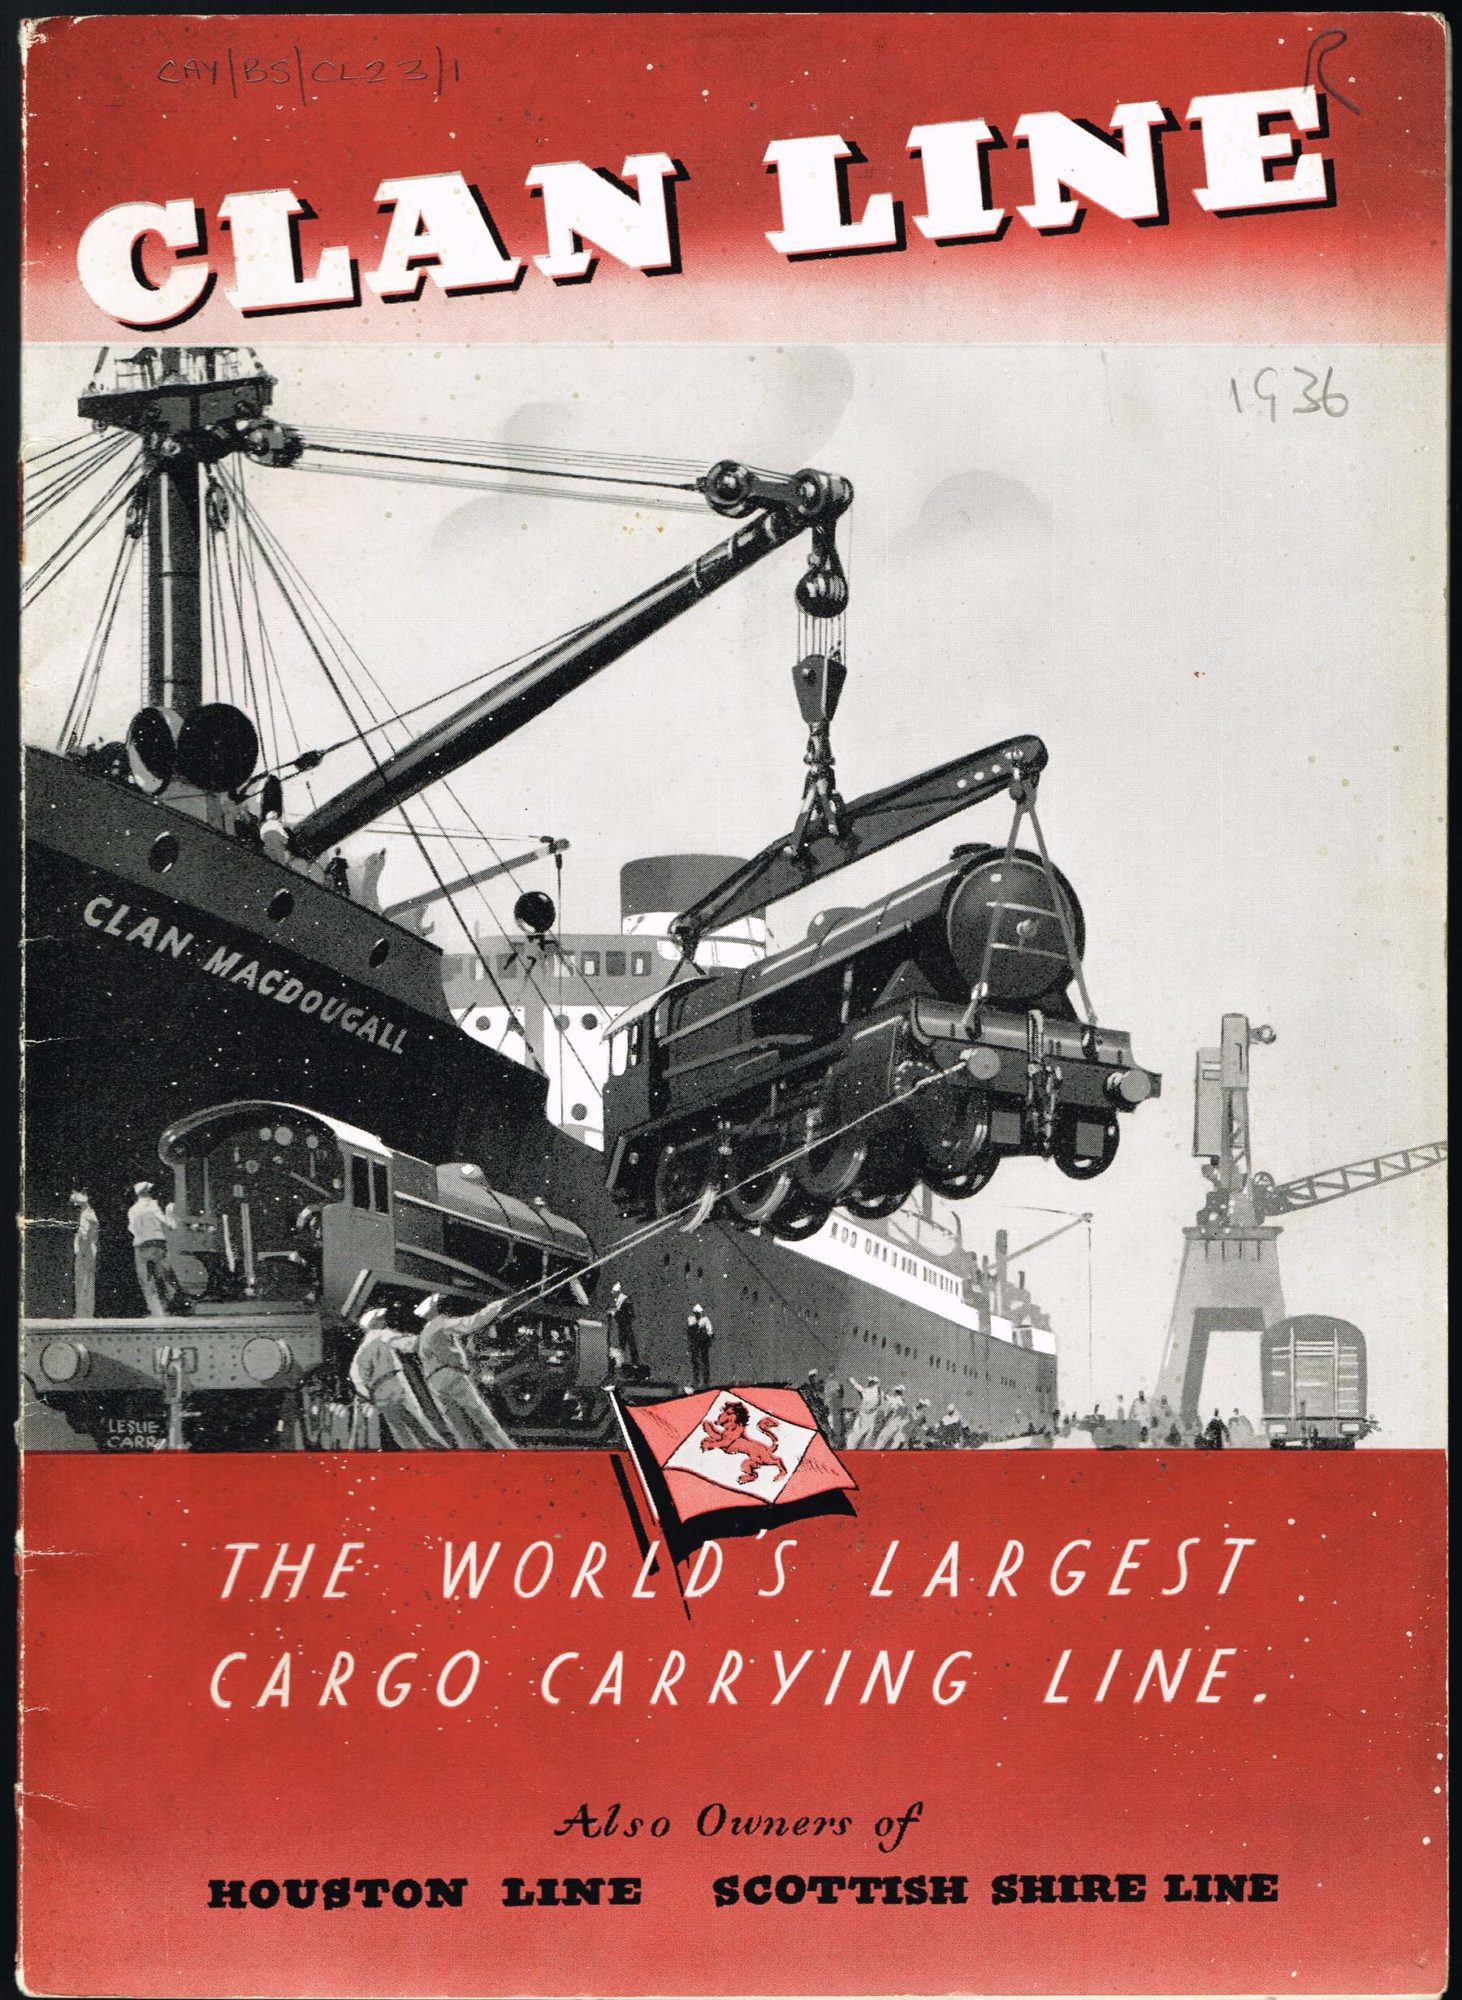 Clan Line brochure, 1936. Artwork showing the ship Clan MacDougall with a crane lifting a steam locomotive